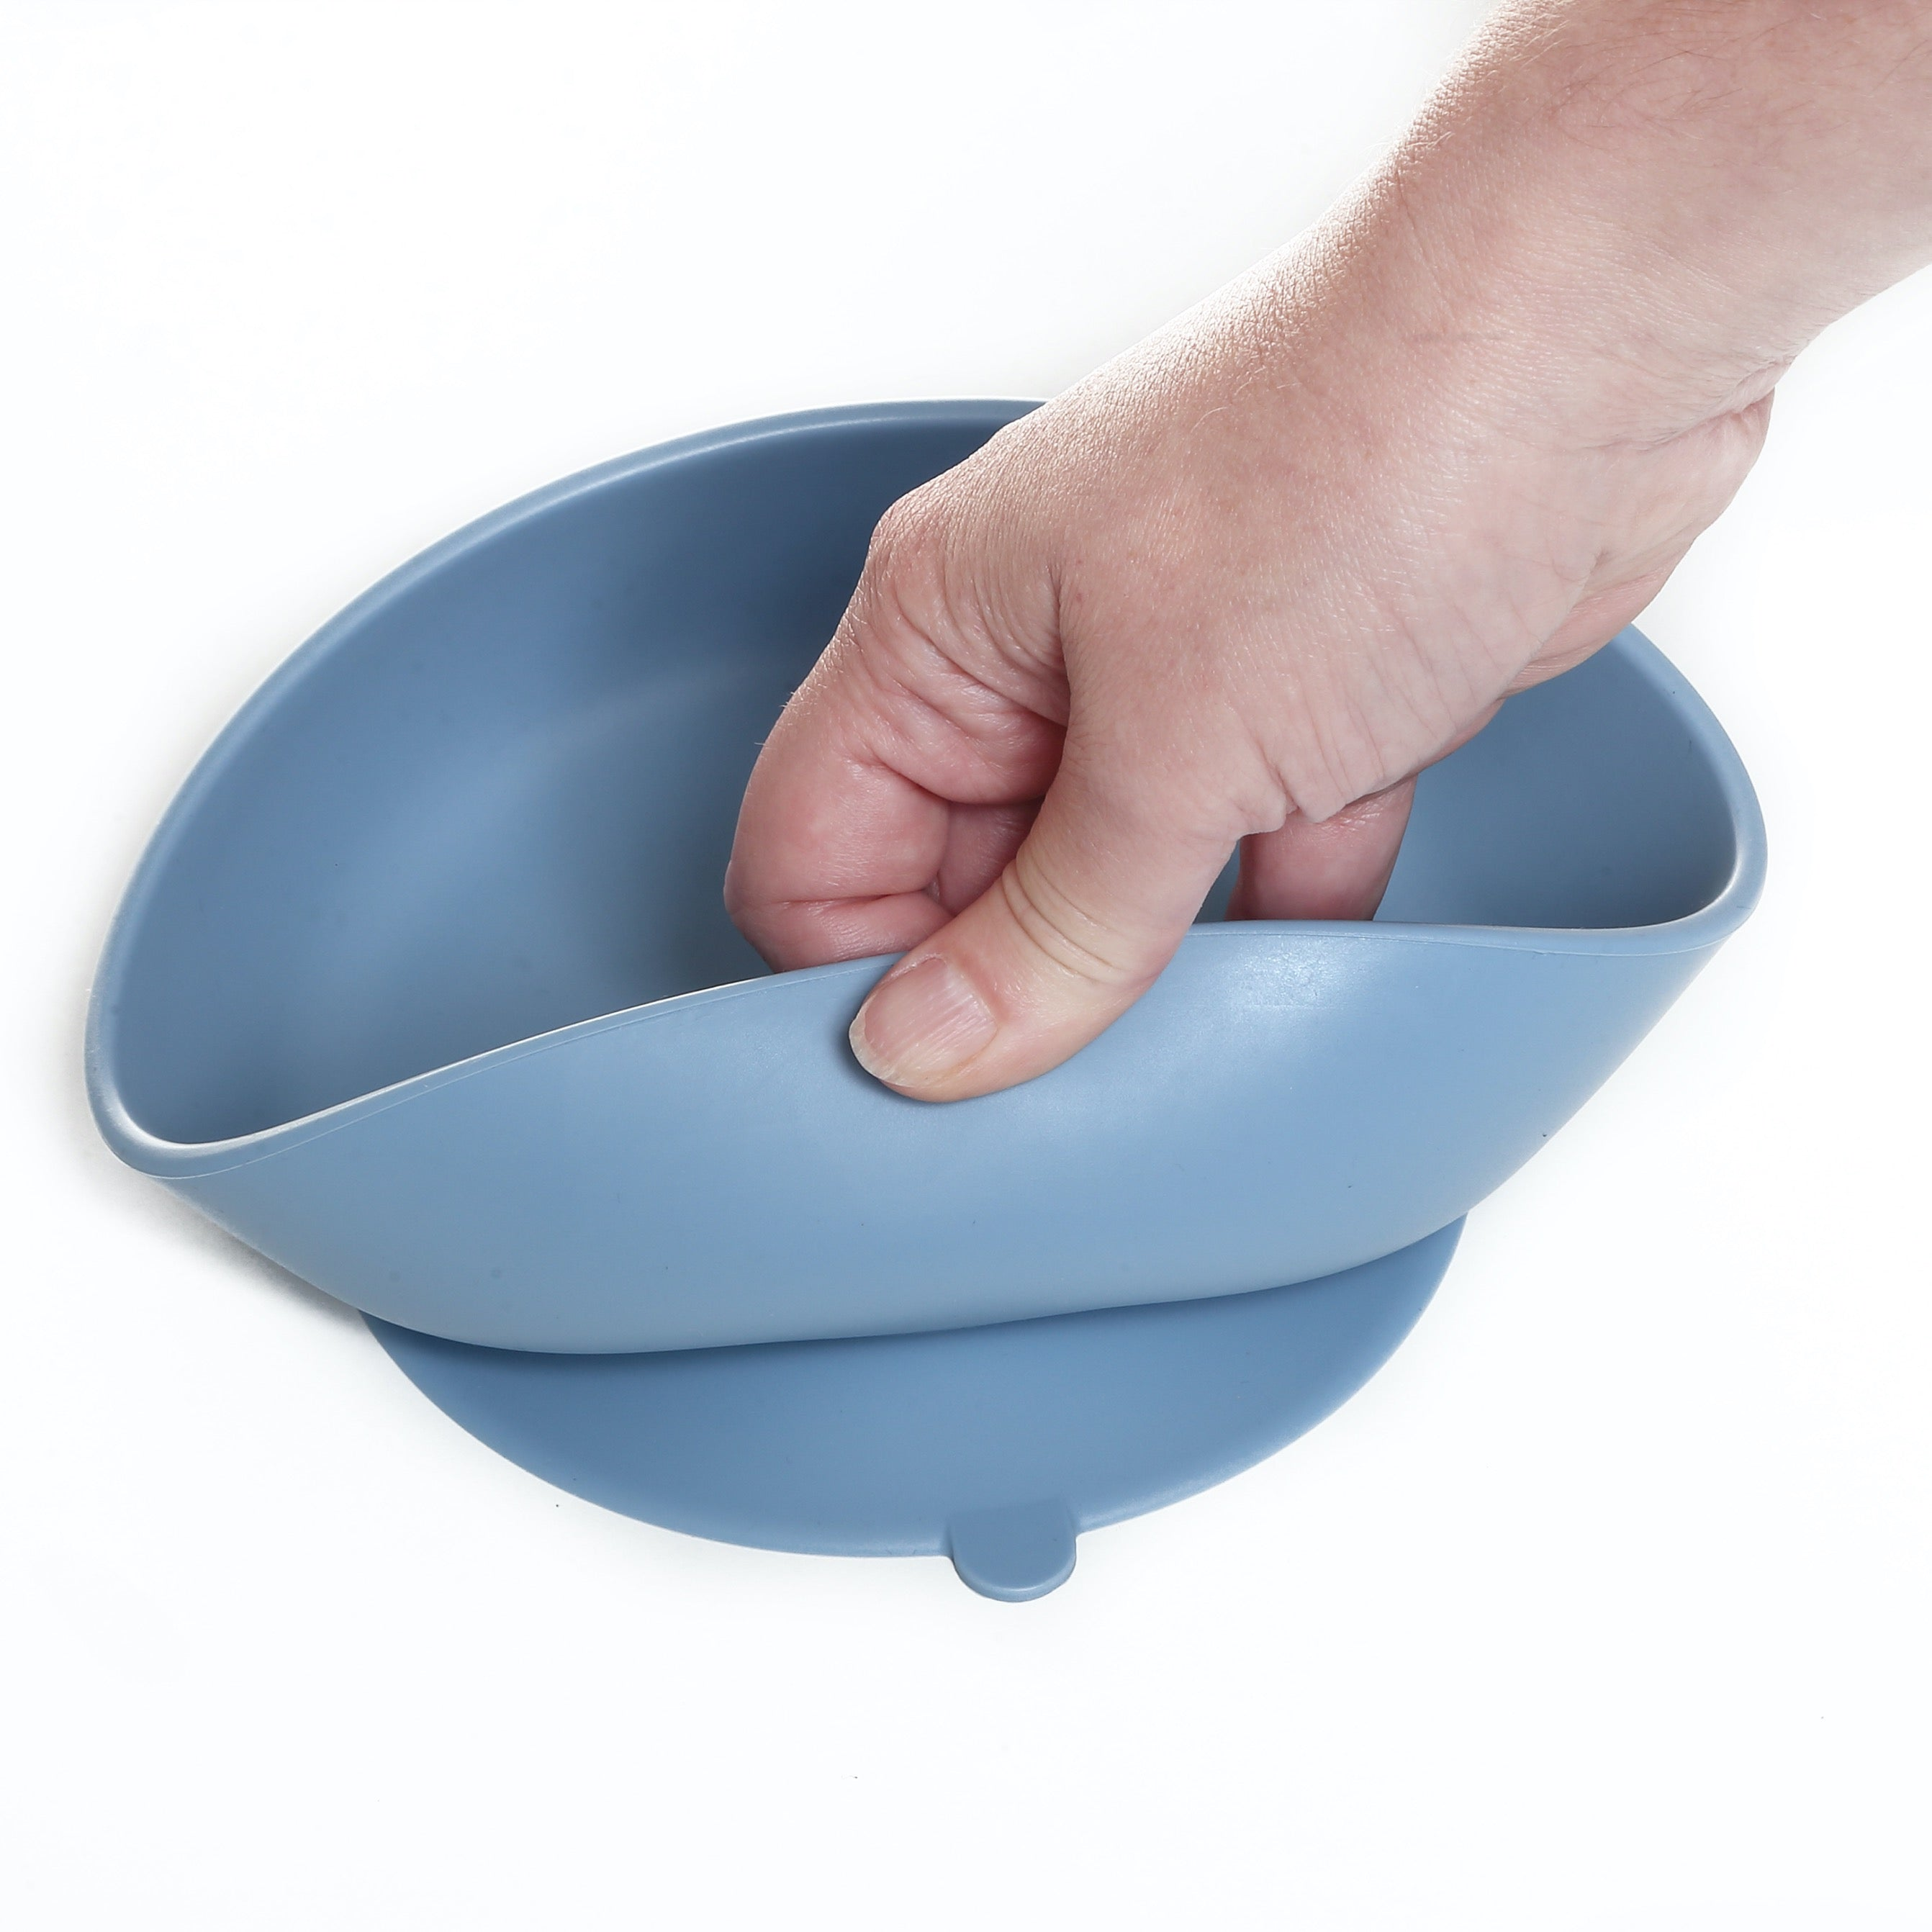 Silicone Baby Bowl Set - Blue & Marble